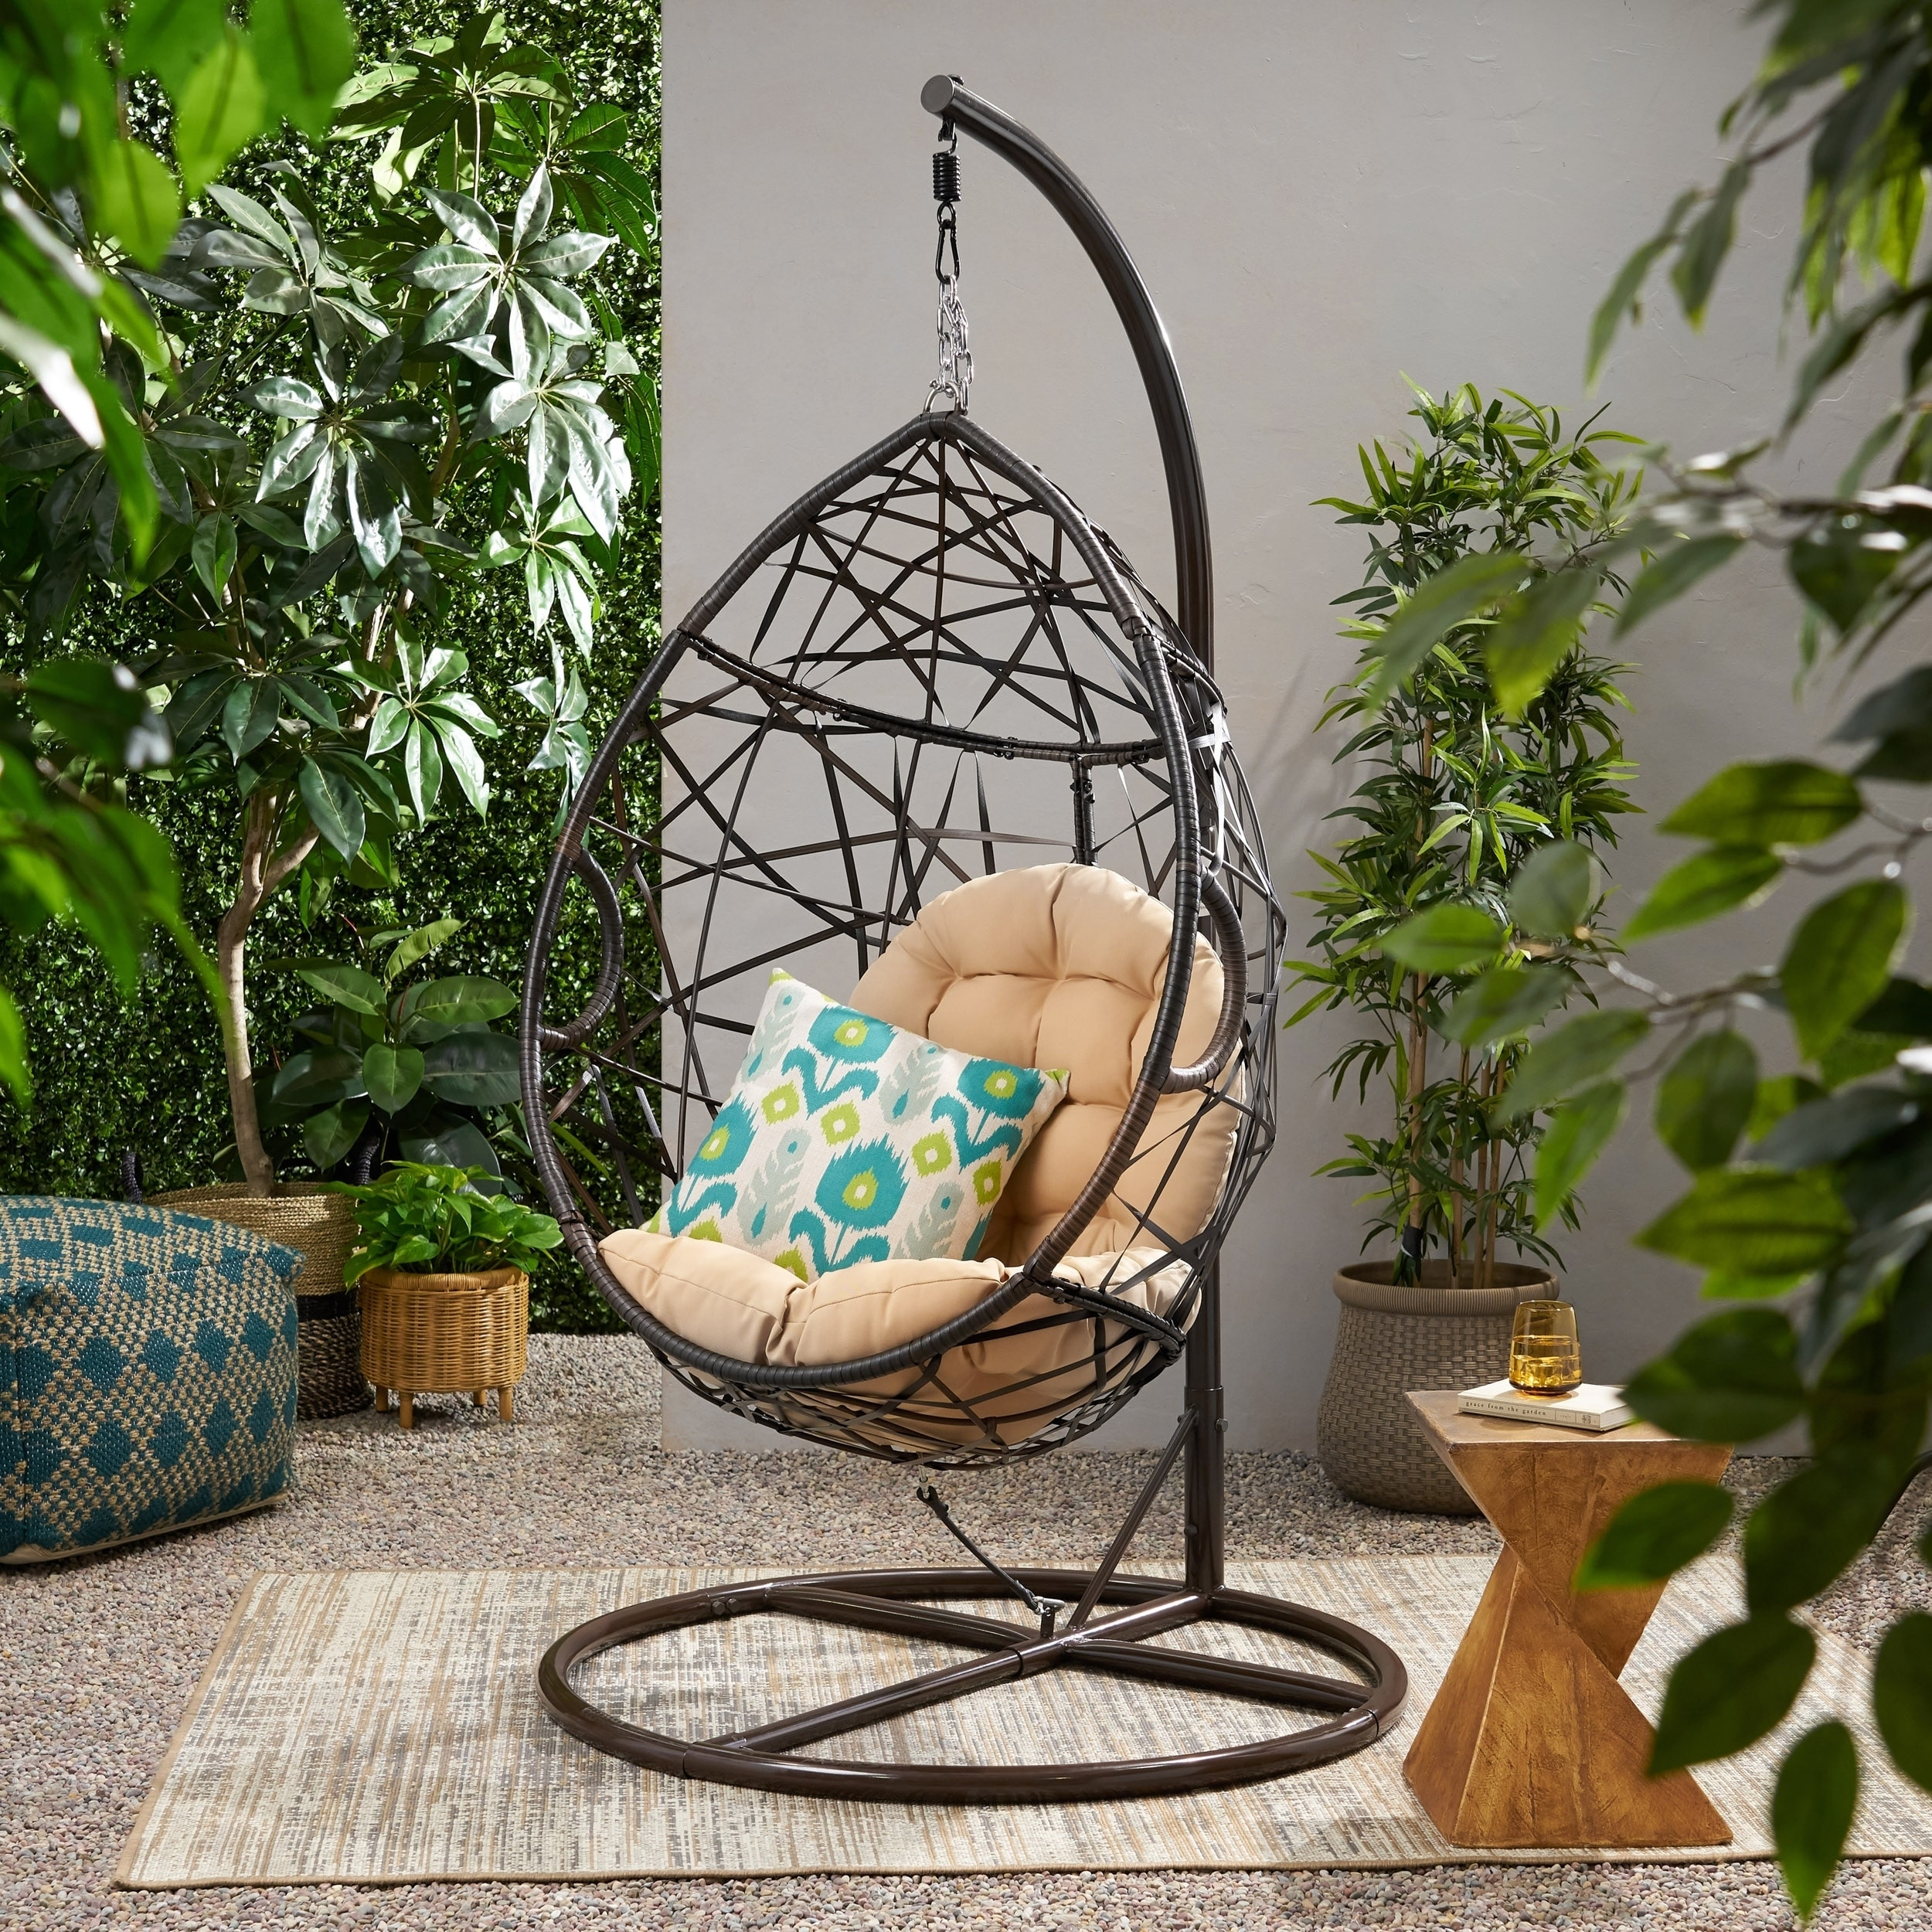 Outdoor Brown Wicker Tear Drop Chair by Christopher Knigh...